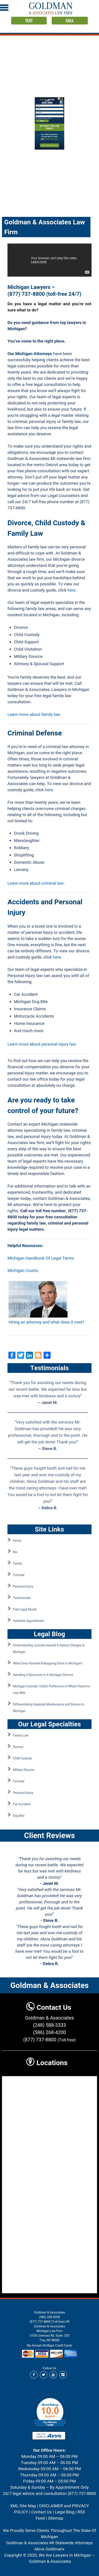 Goldman & Associates - (877) 737-8800 - Detroit MI Lawyers